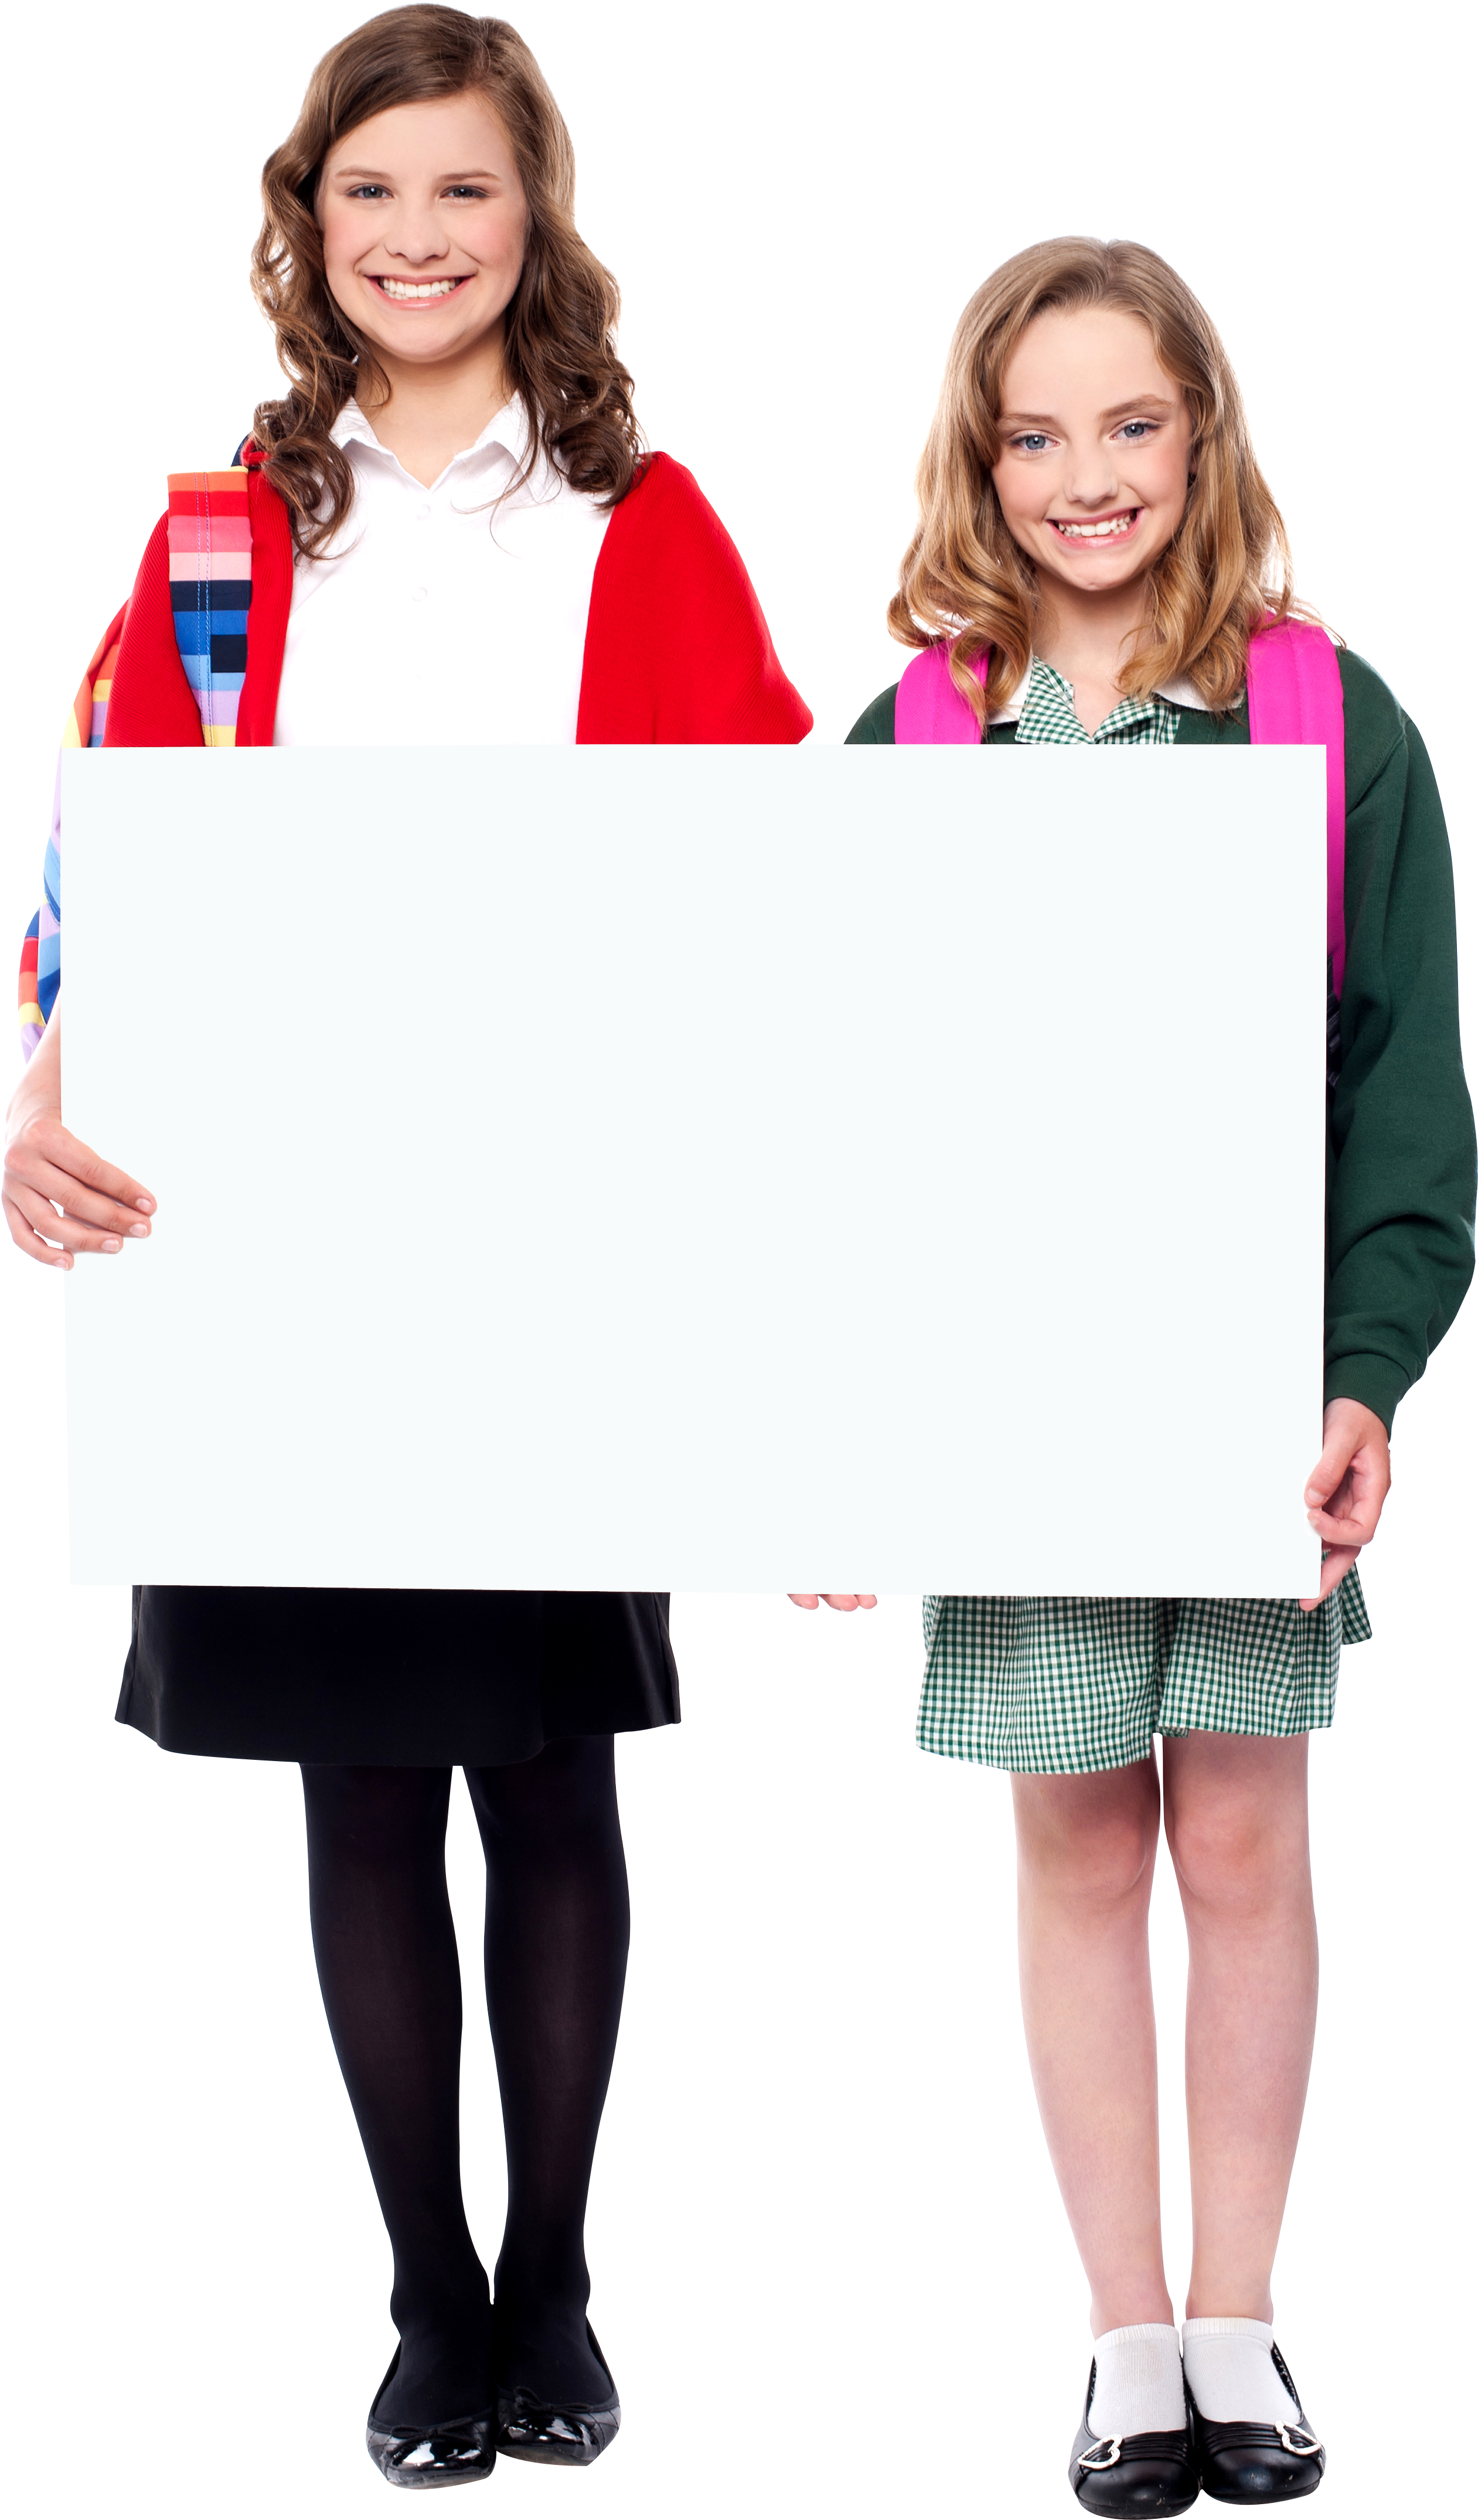 HD People Holding Banner Free Commercial Use Png Image.